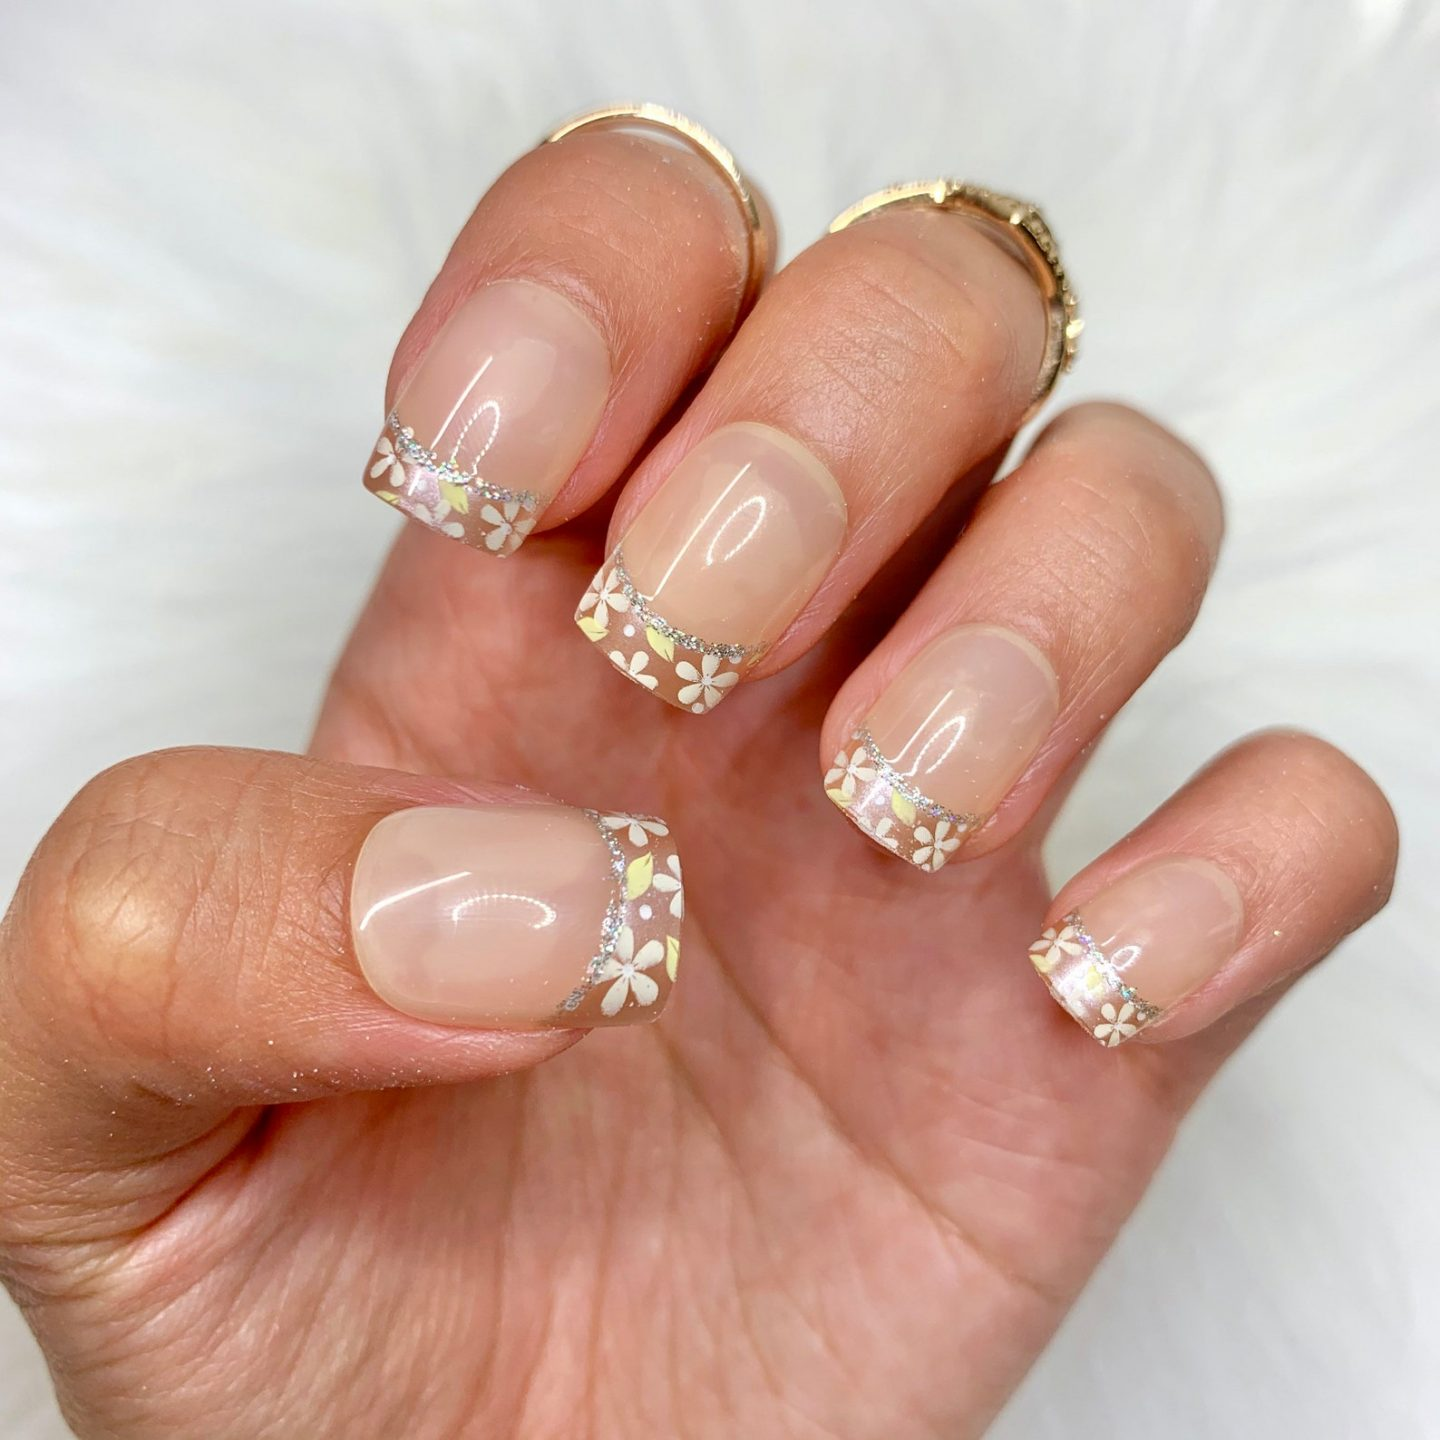 Short coffin shaped daisy French tip nails